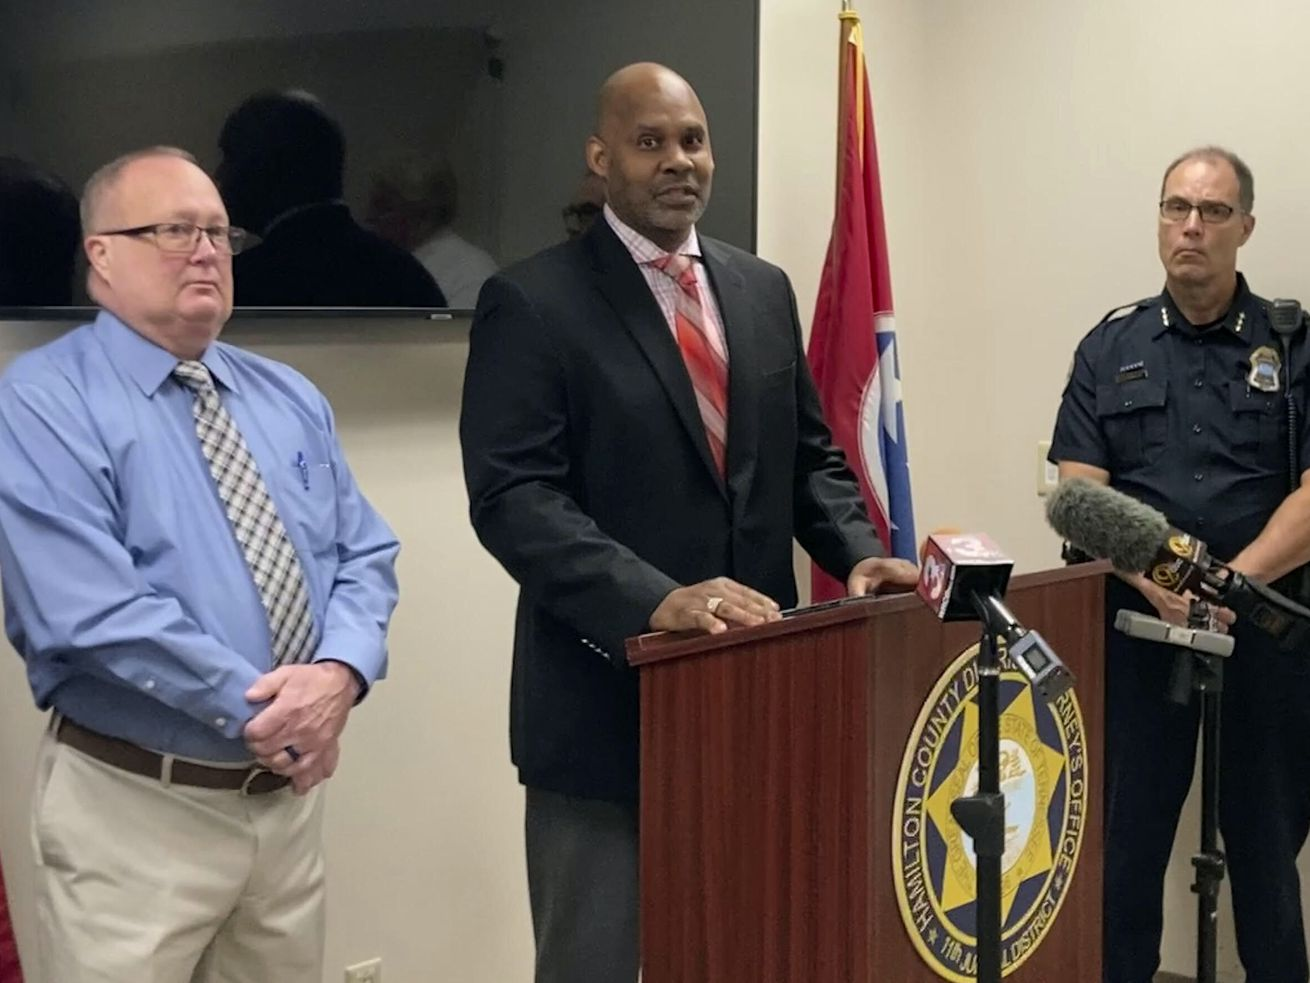 Saadiq Pettyjohn, center, son of Samuel Pettyjohn, speaks at a news conference, Wednesday, June 9, 2021, in Chattanooga, Tenn. Law enforcement officials announced the closing a 42-year-old cold case of Samuel Pettyjohn, a Chattanooga businessman who was shot and killed in 1979 in a contract killing that former Gov. Ray Blanton's administration helped pay for.